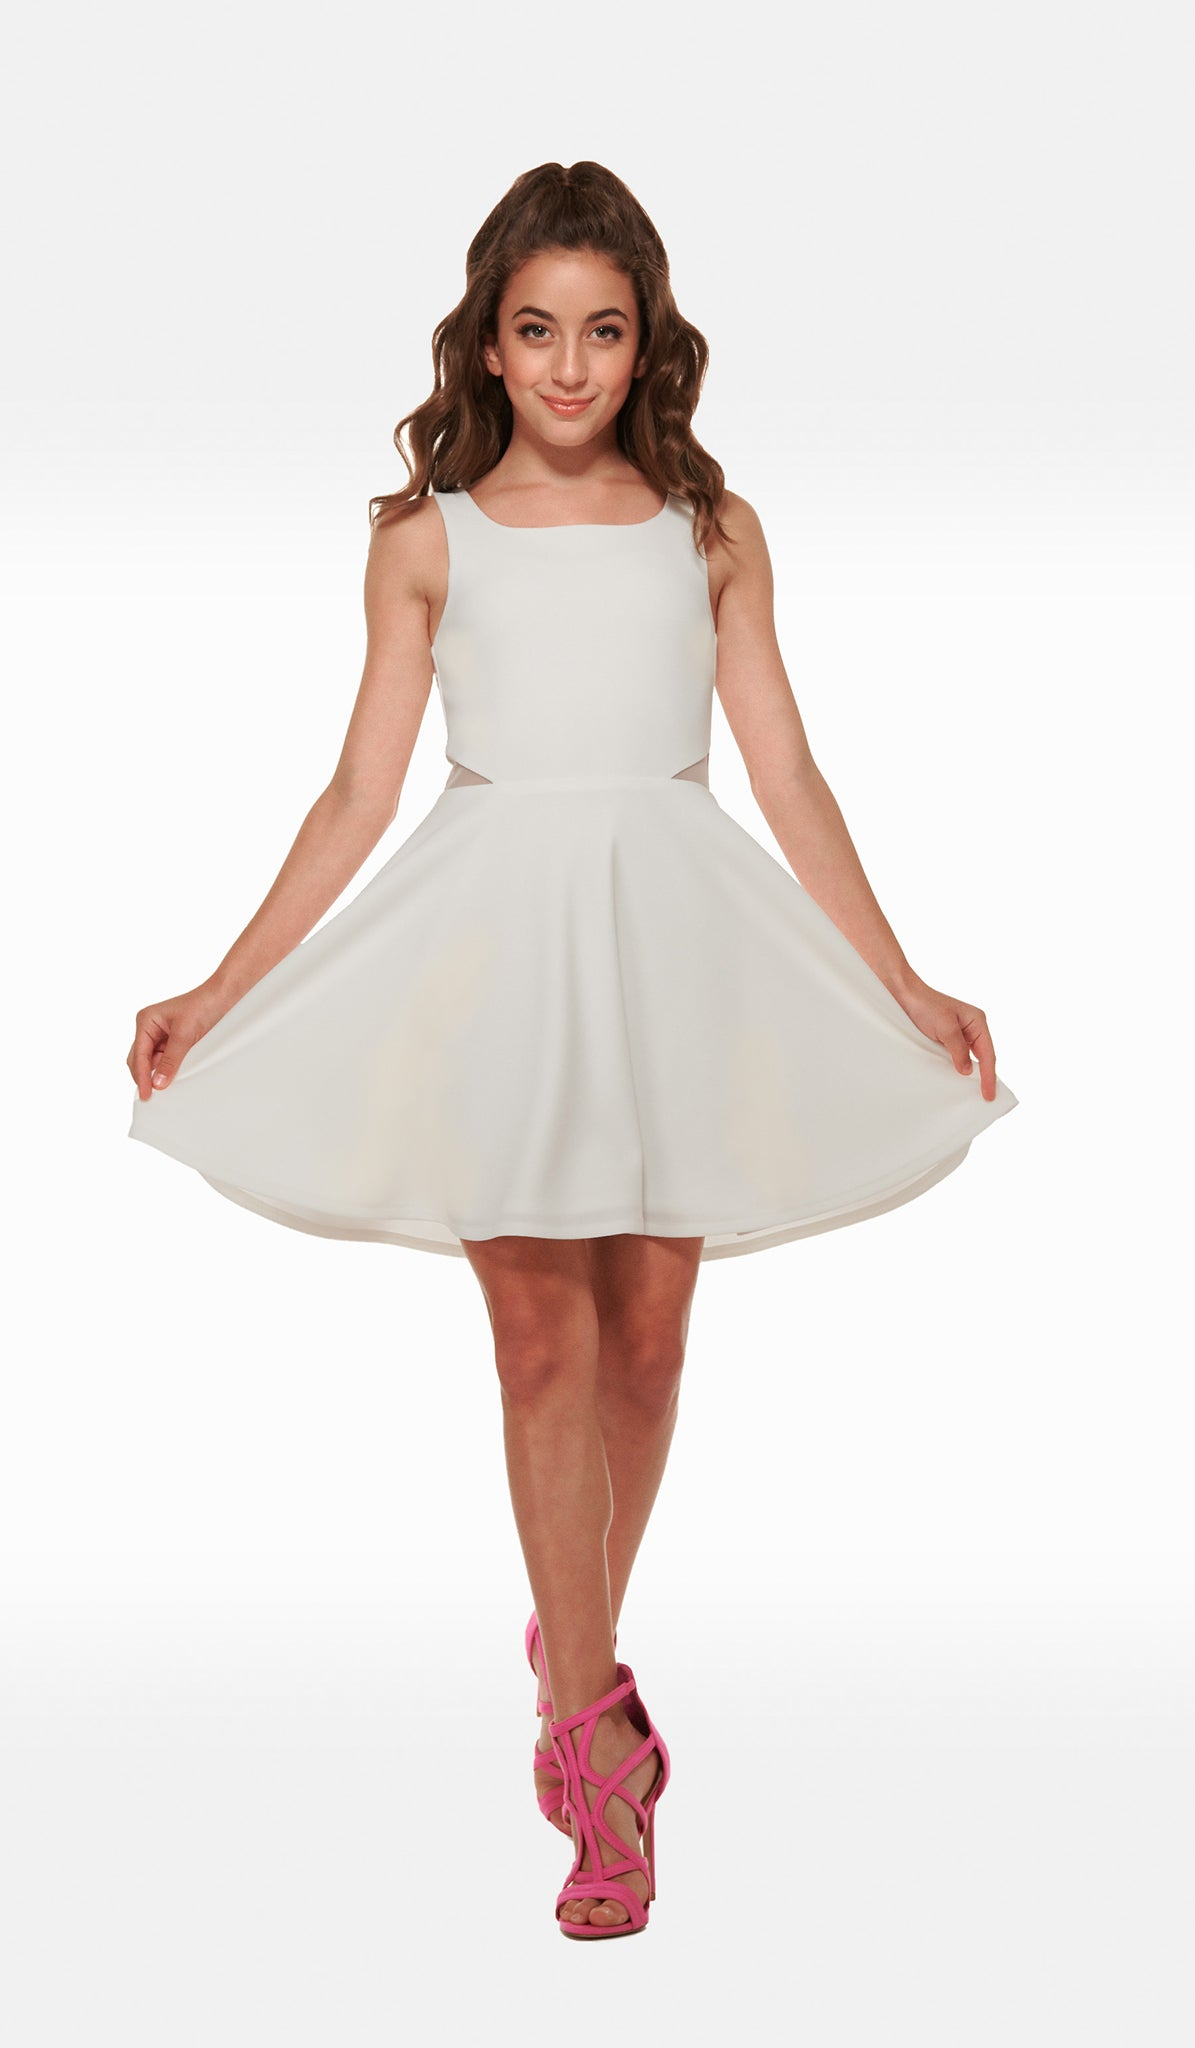 THE RILEY DRESS - Sallymiller.com - [variant title] - | Event & Party Dresses for Tween Girls & Juniors | Weddings Dresses, Bat Mitzvah Dresses, Sweet Sixteen Dresses, Graduation Dresses, Birthday Party Dresses, Bar Mitzvah Dresses, Cotillion Dresses